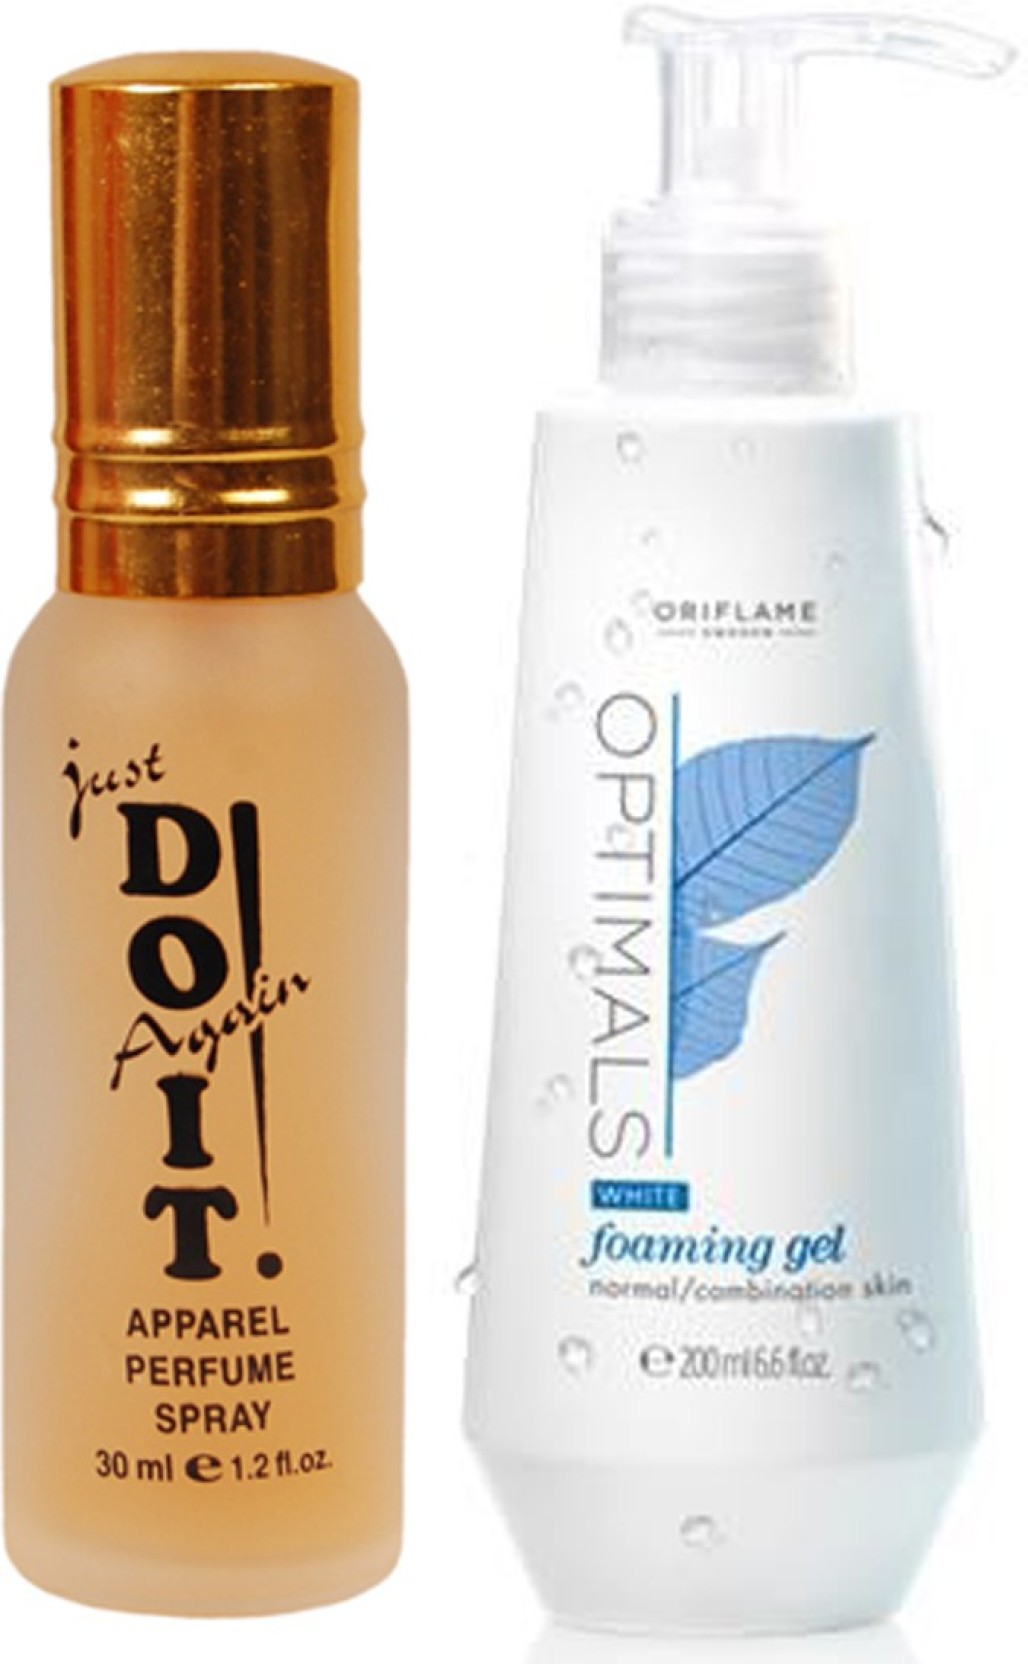 Oriflame Sweden Optimals Whitening Cleanser Normal Combination Skin Miss Giordani Body Lotion Share